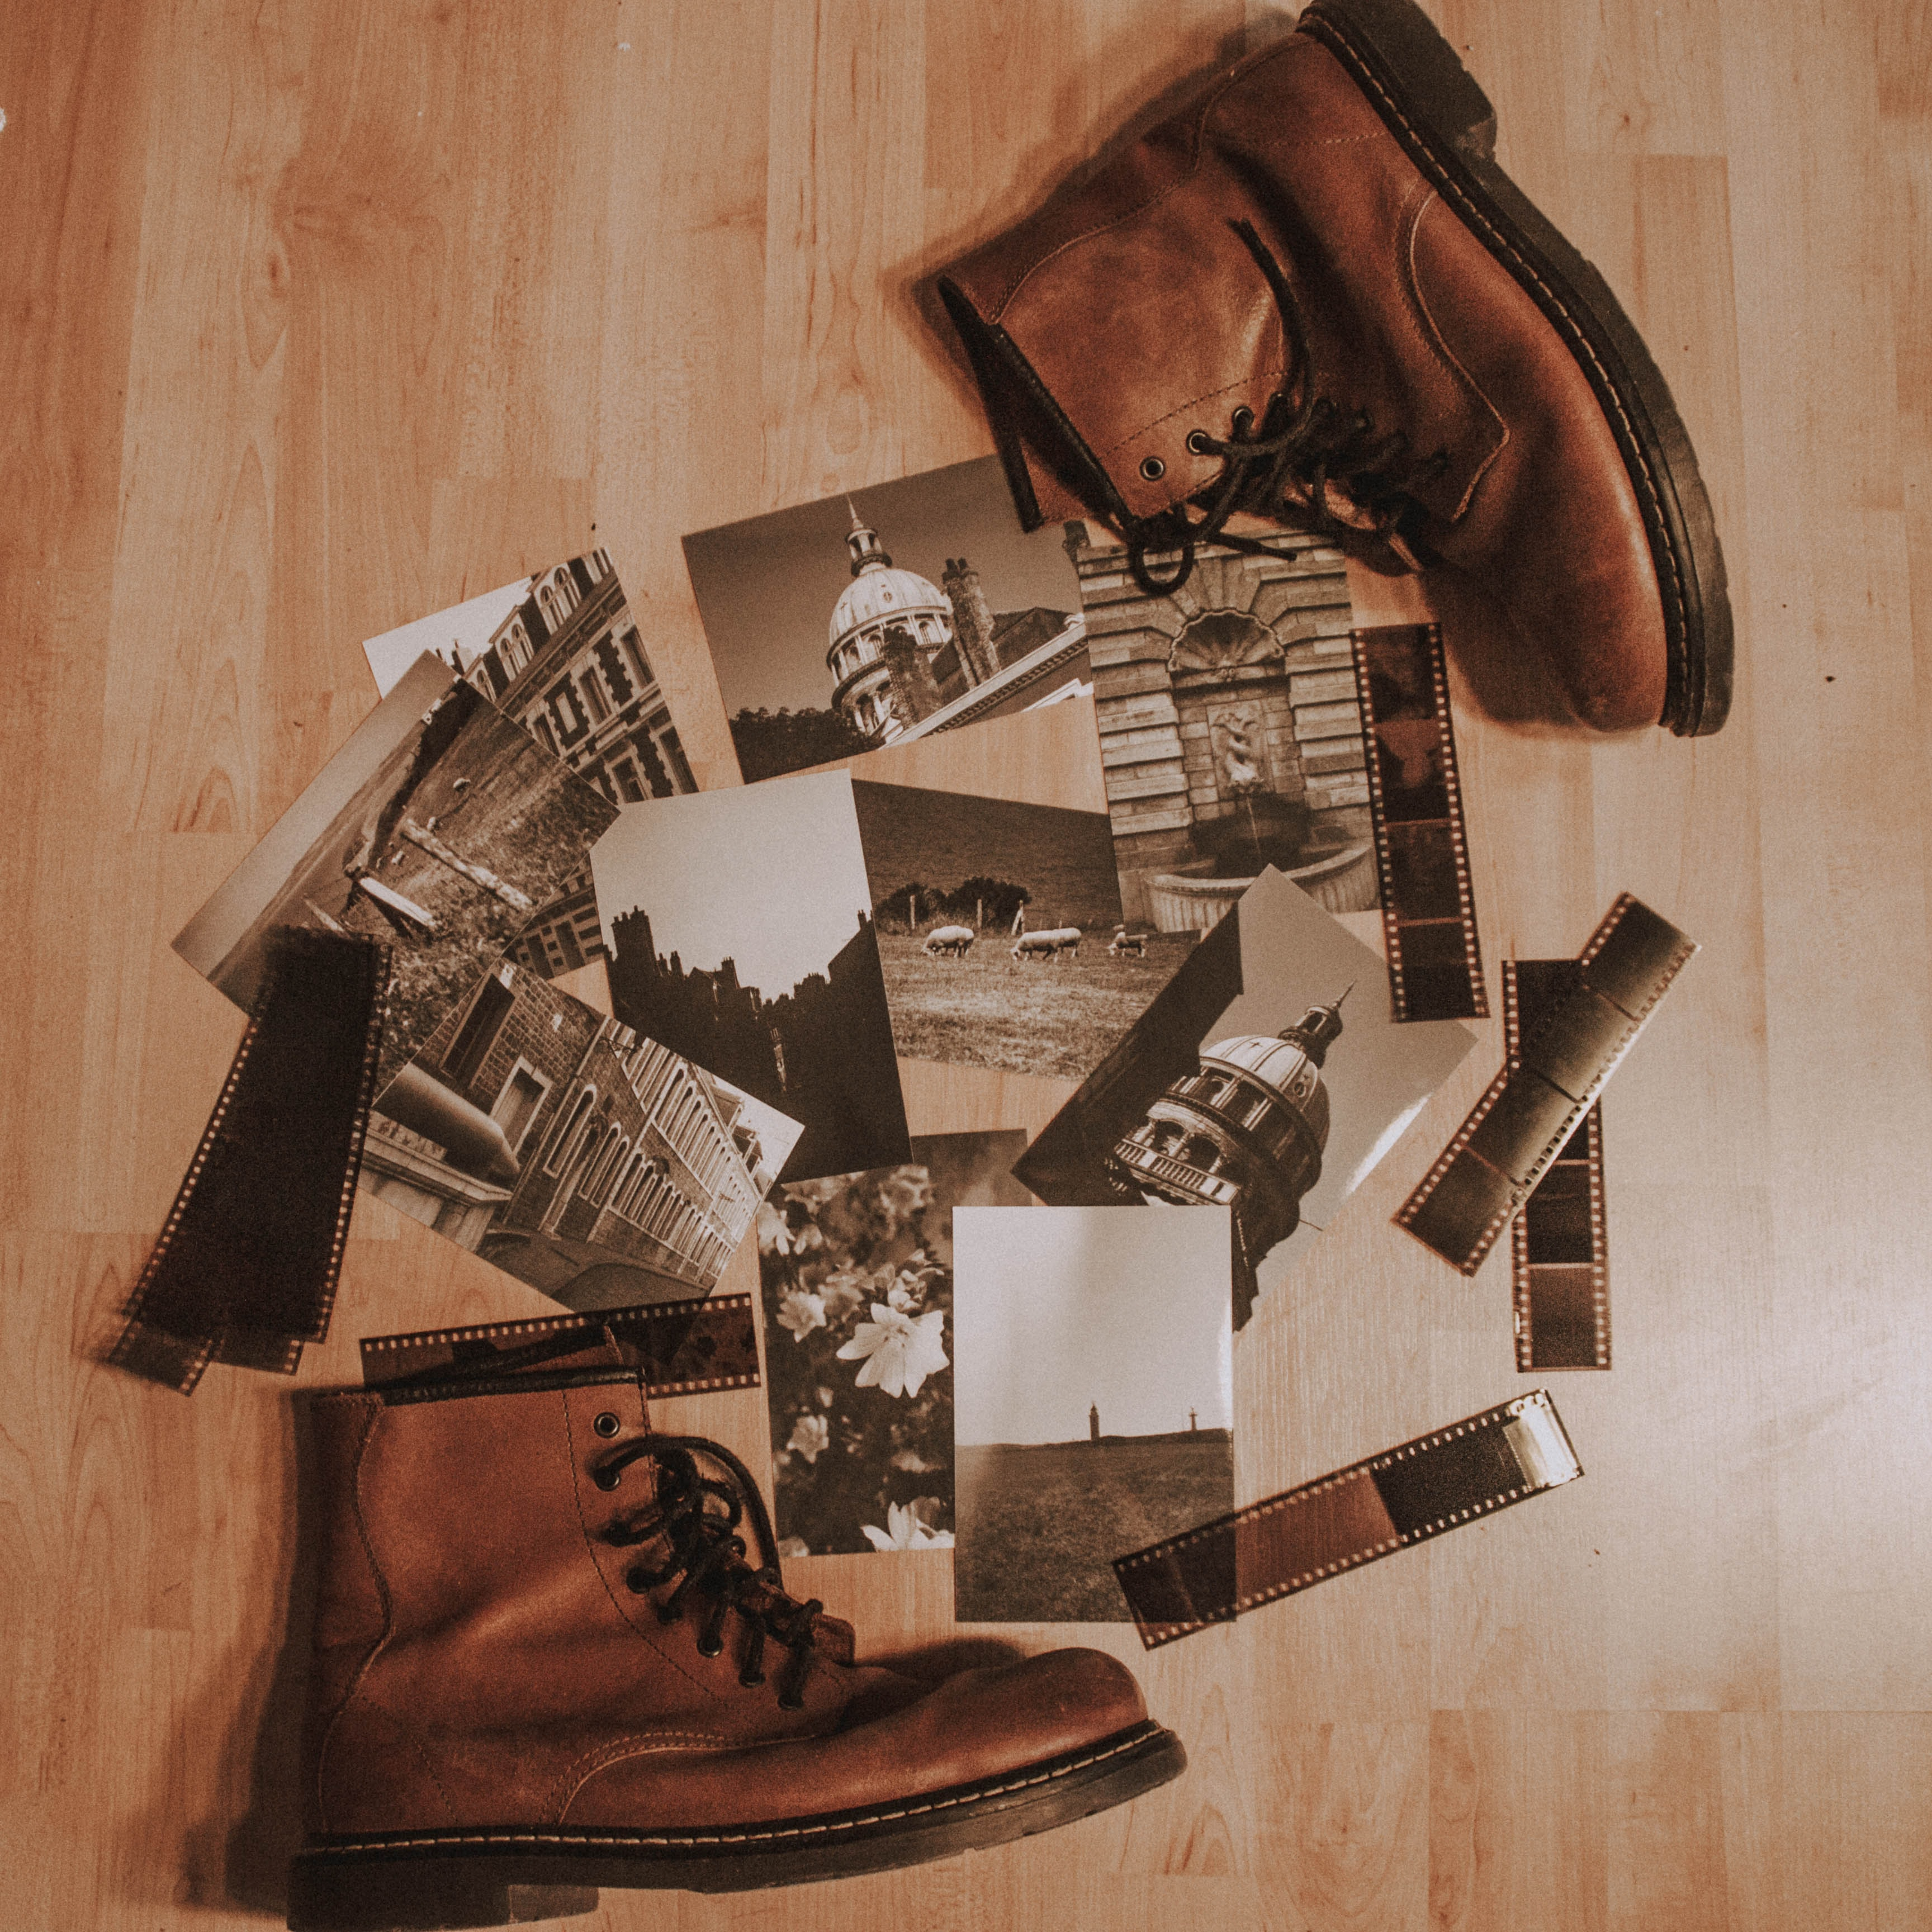 photos between pair of brown leather boots on floor